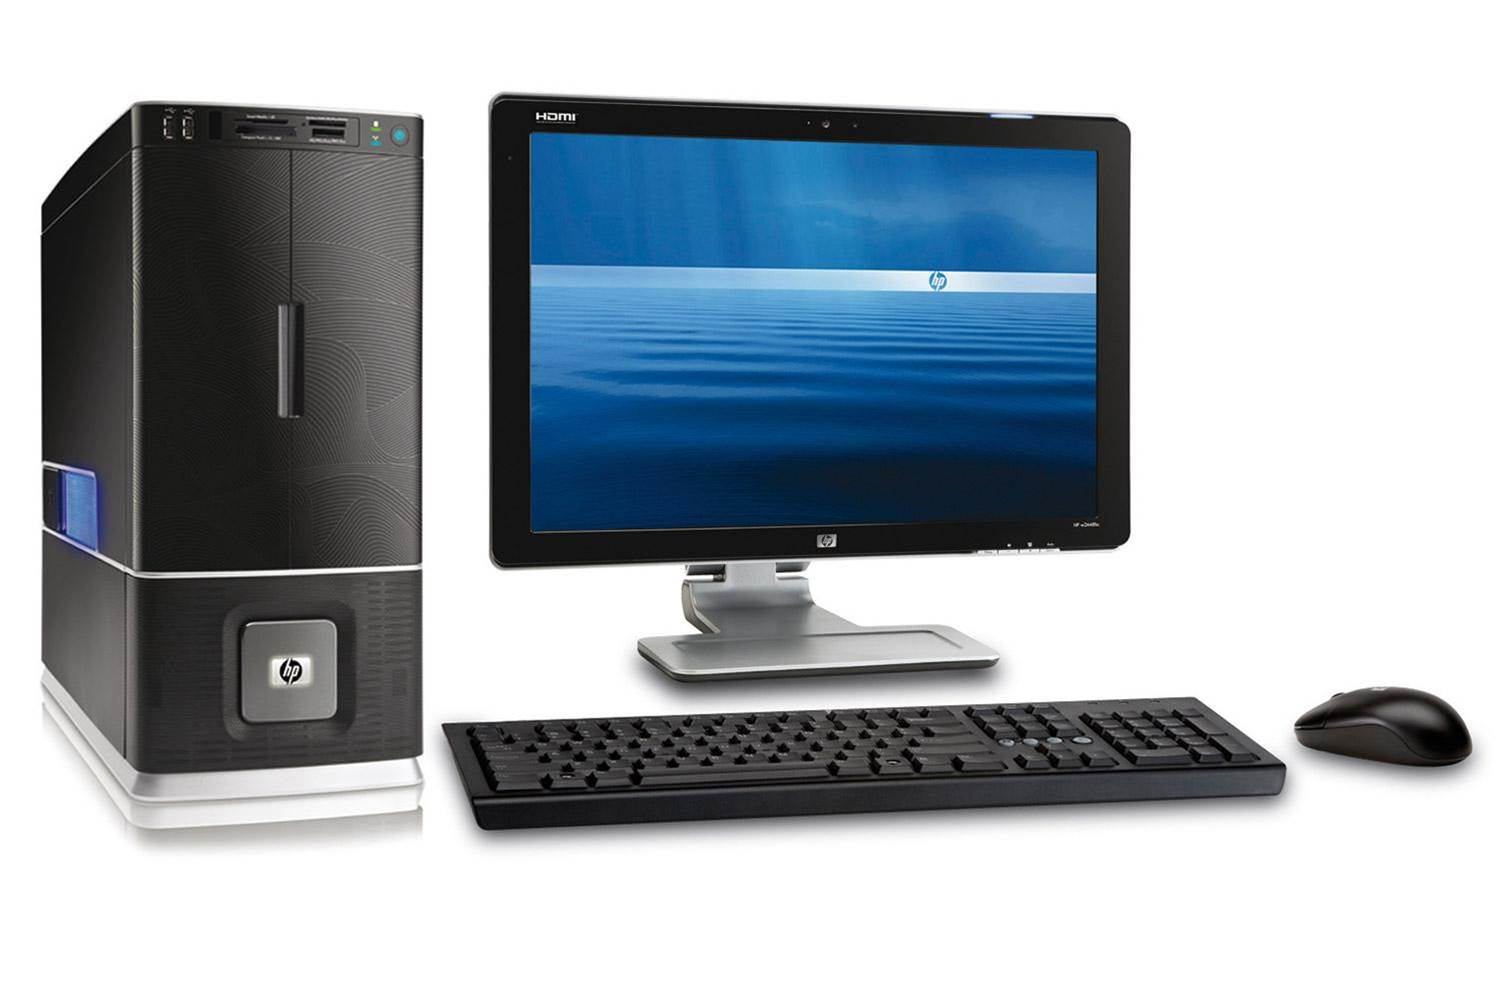 PC sales down, but high-end processor sales booming